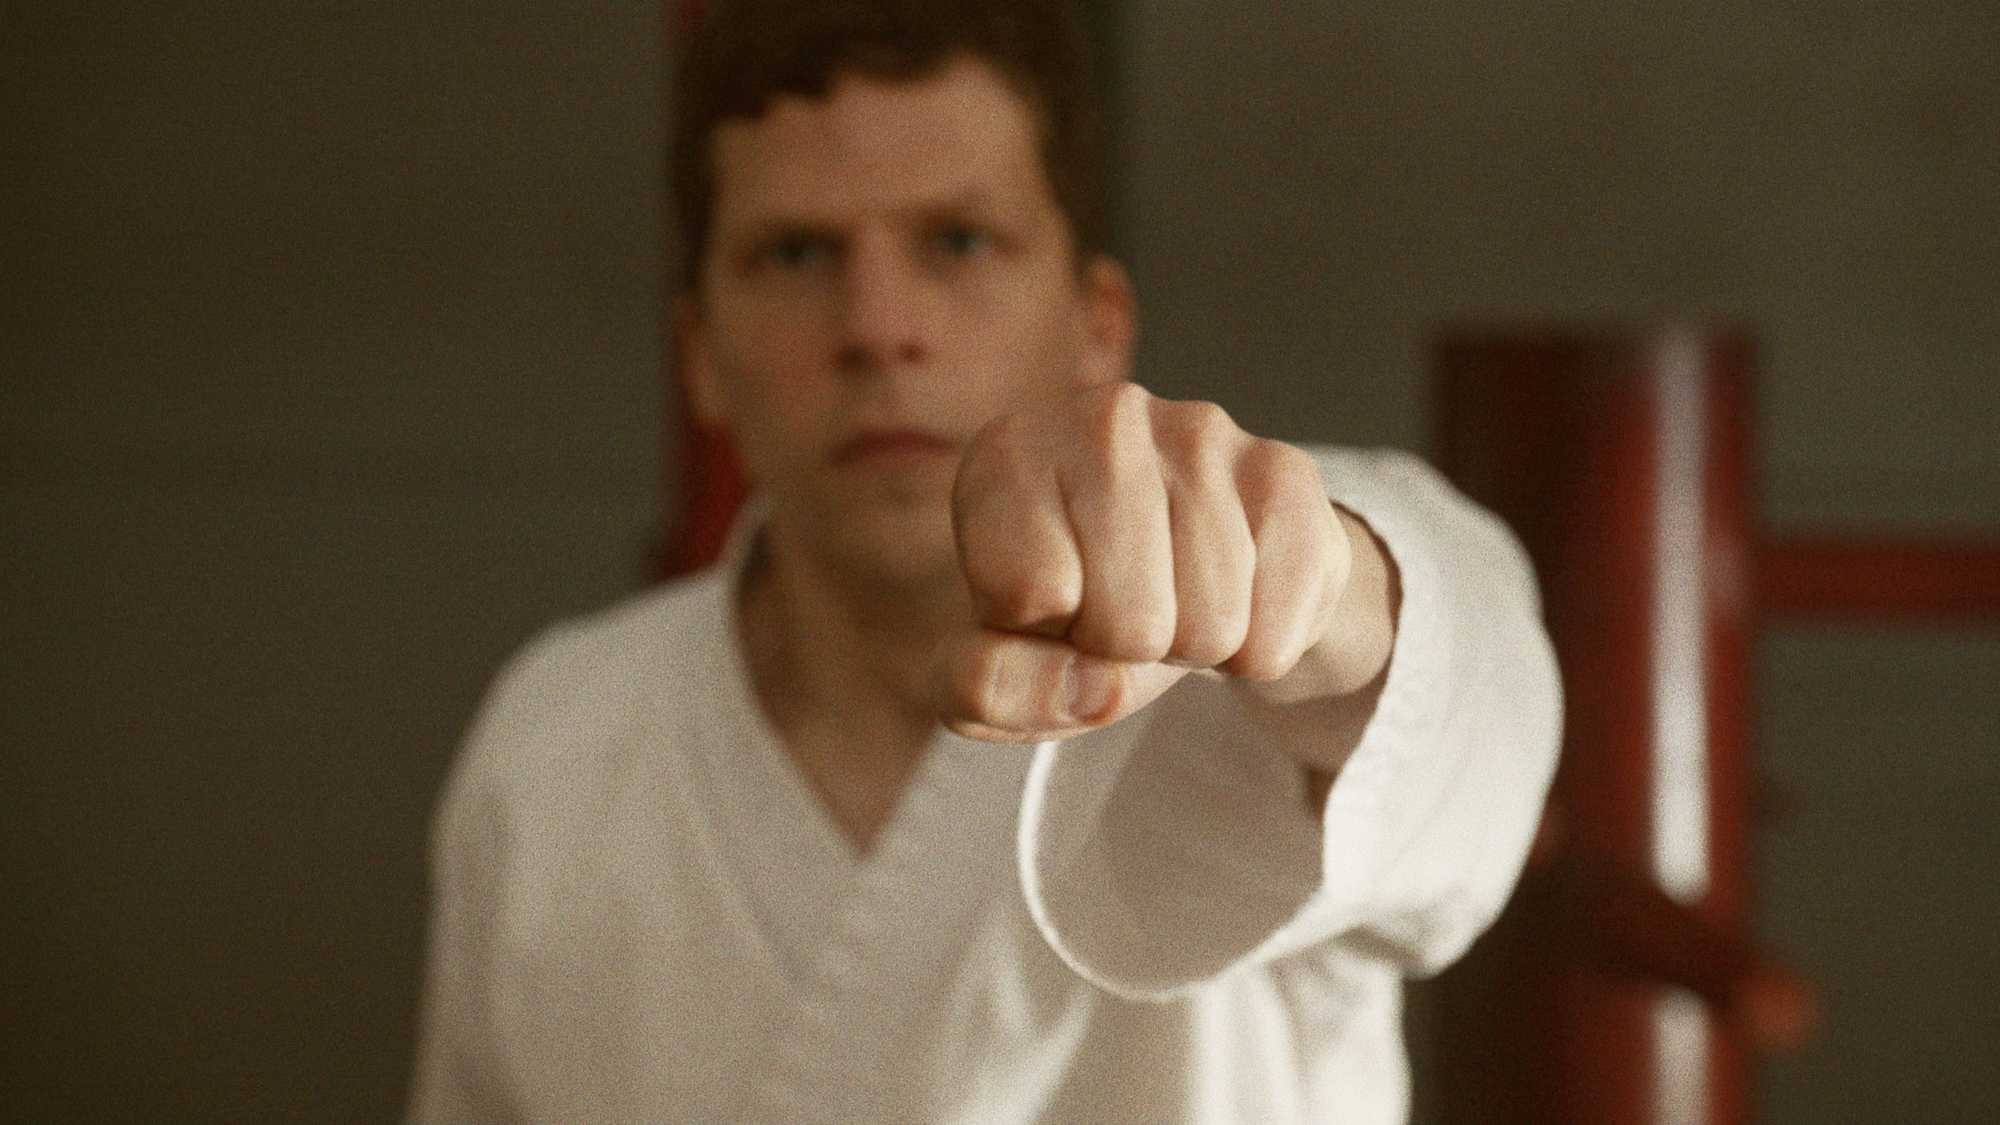 The Art of Self-Defense (image 2)